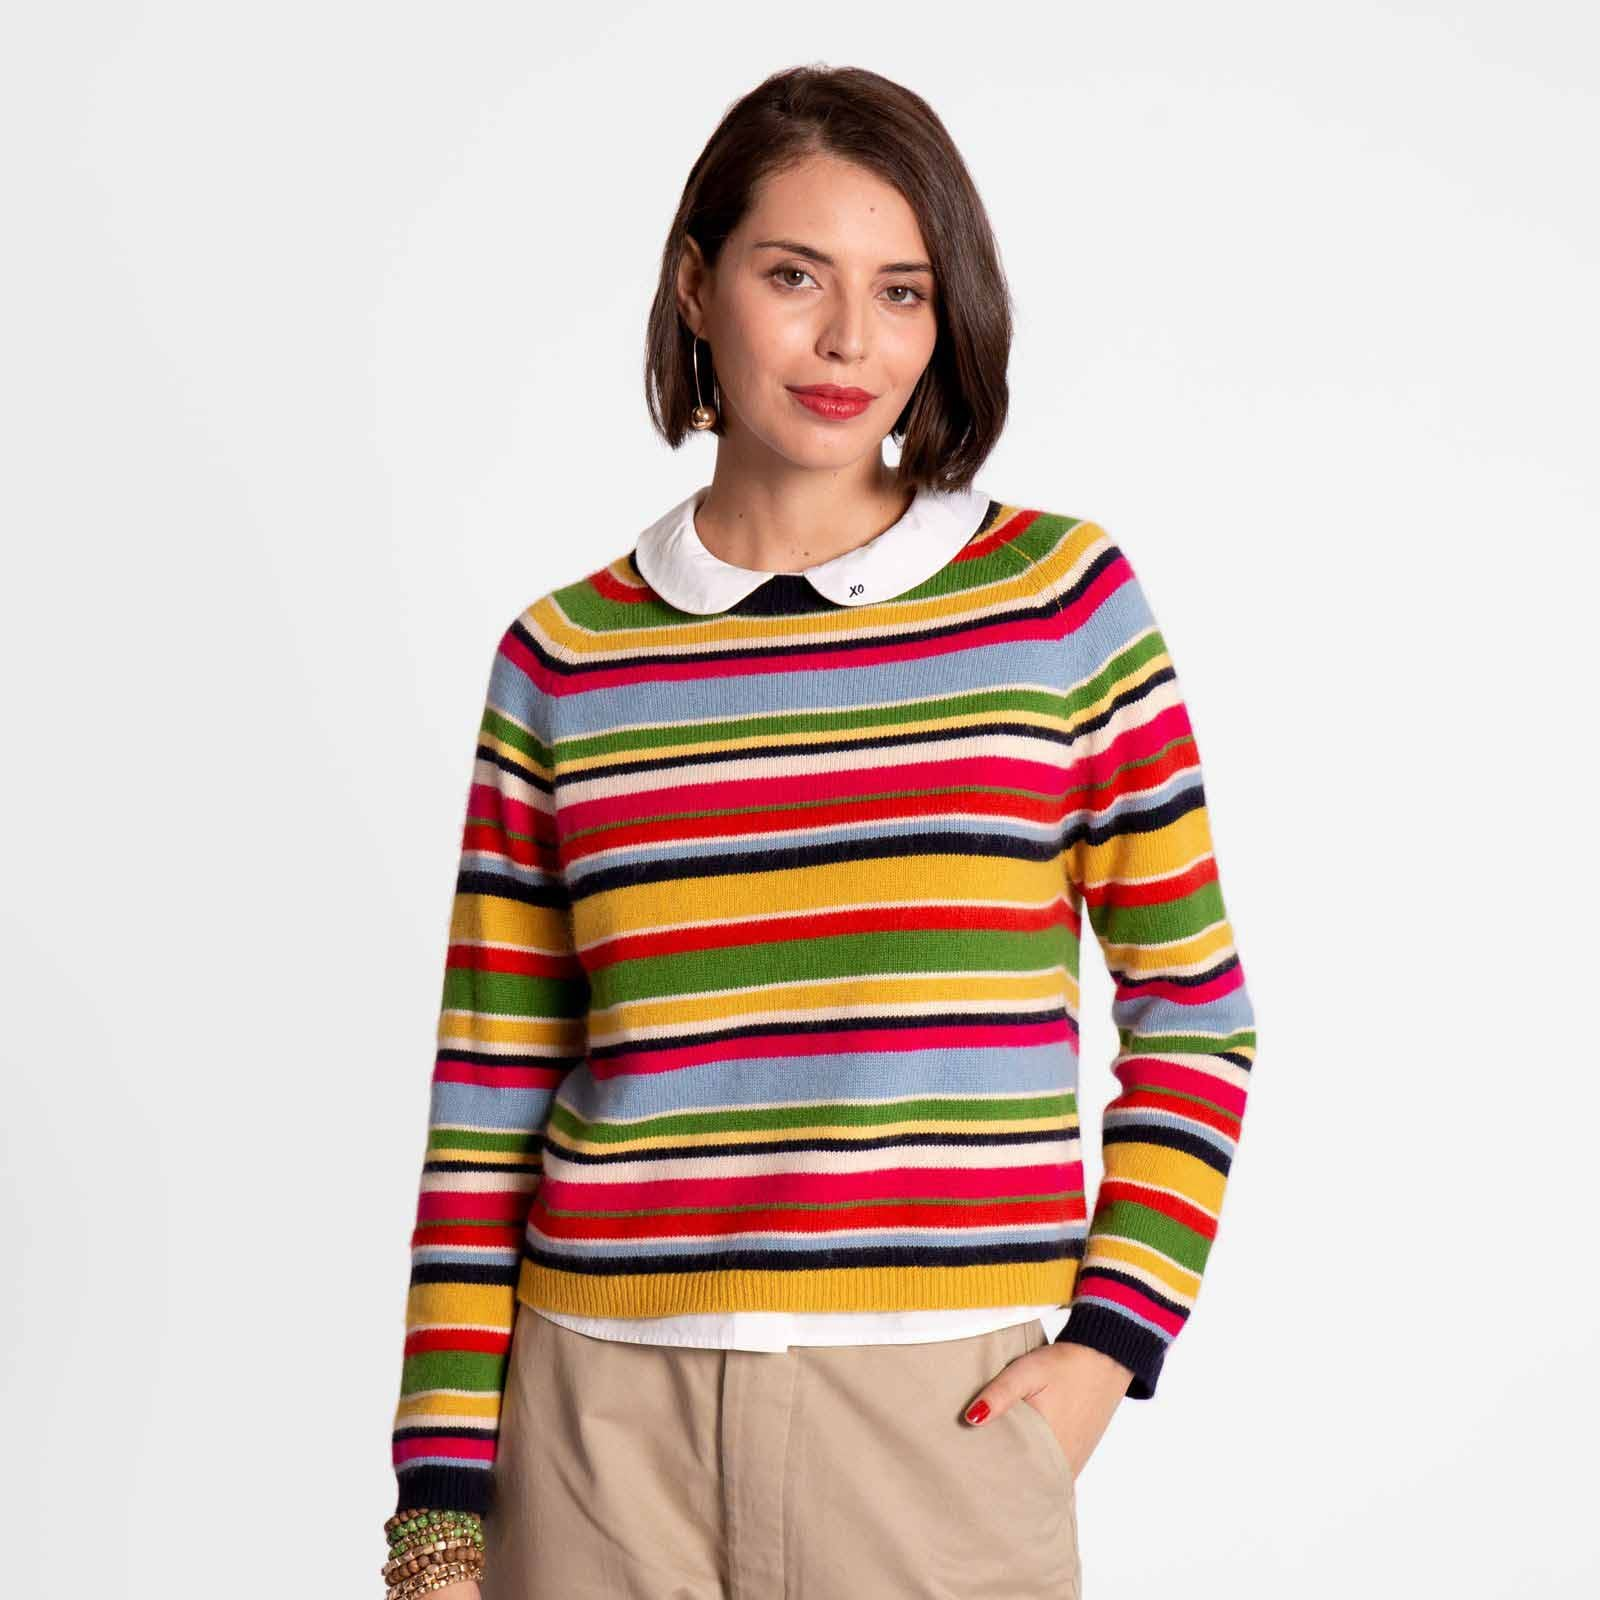 James Striped Sweater - Frances Valentine